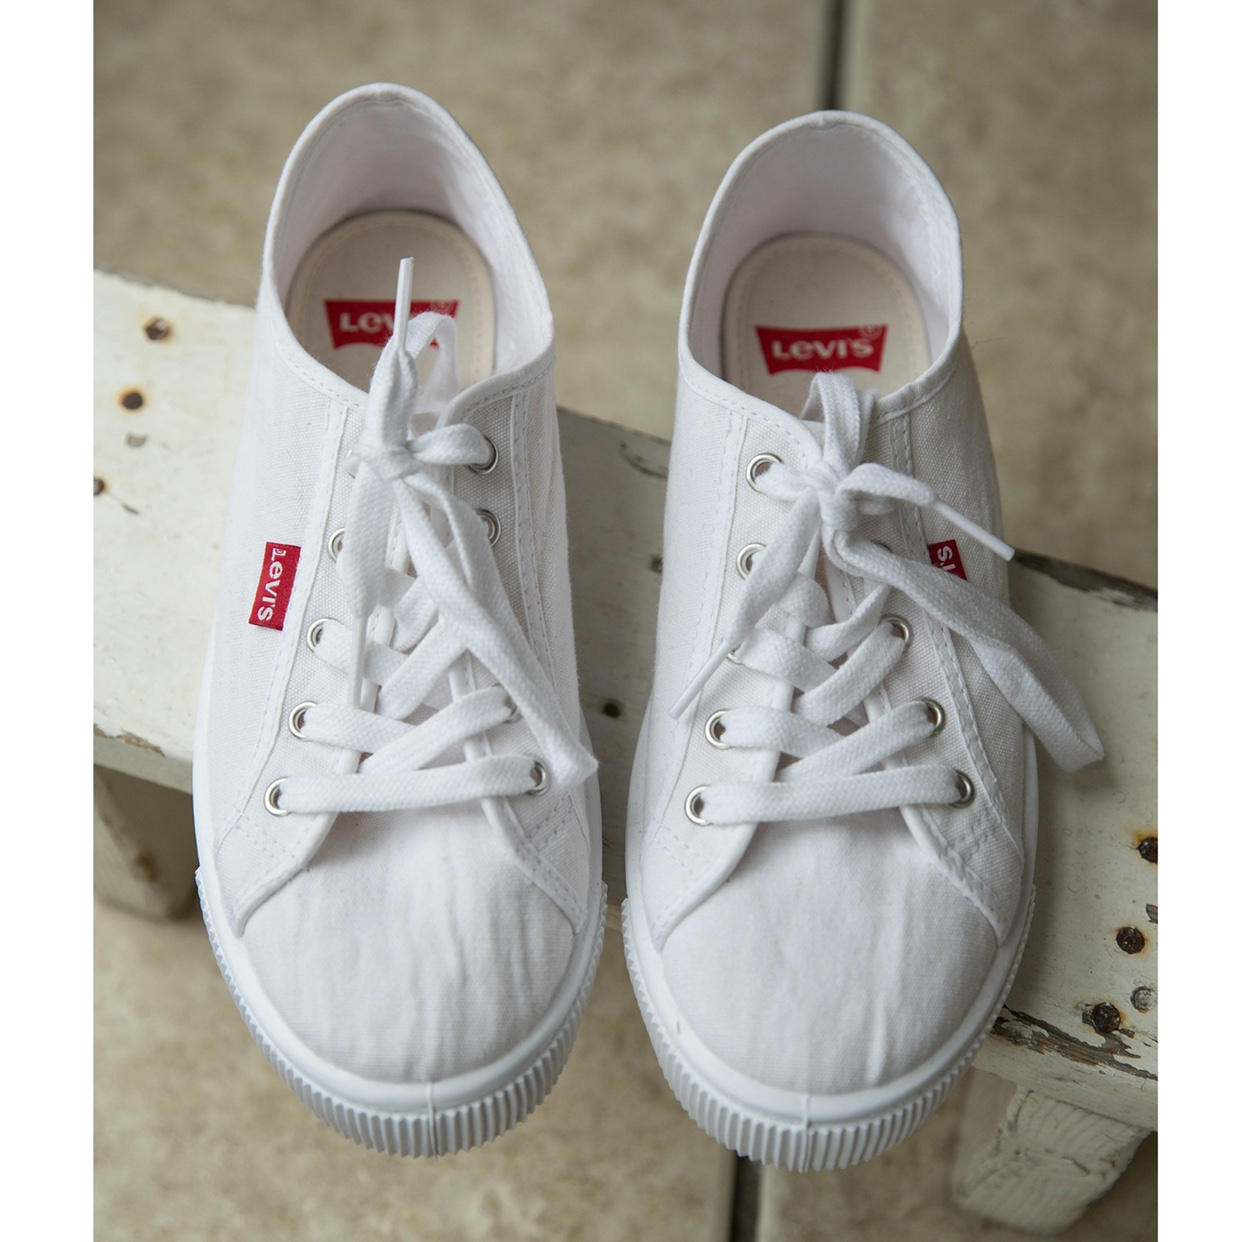 Levi's canvas sneakers shoe trainers in